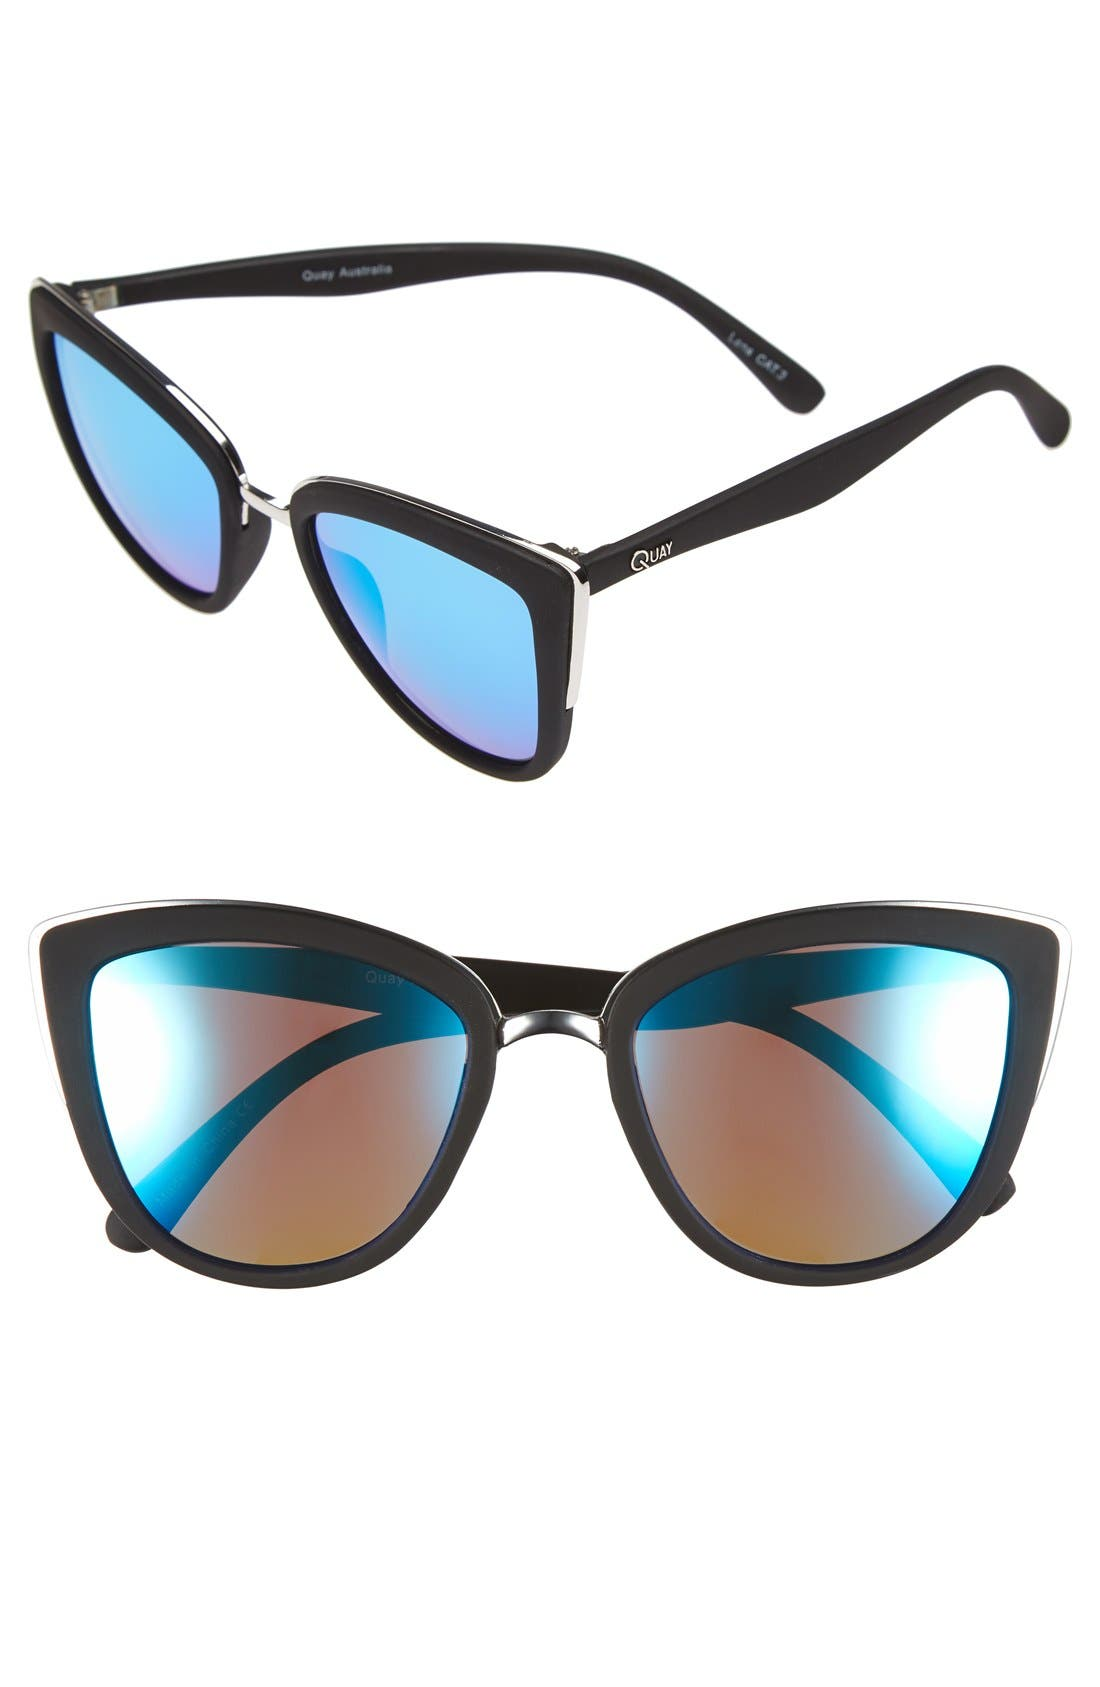 'My Girl' 50mm Cat Eye Sunglasses,                             Main thumbnail 1, color,                             001